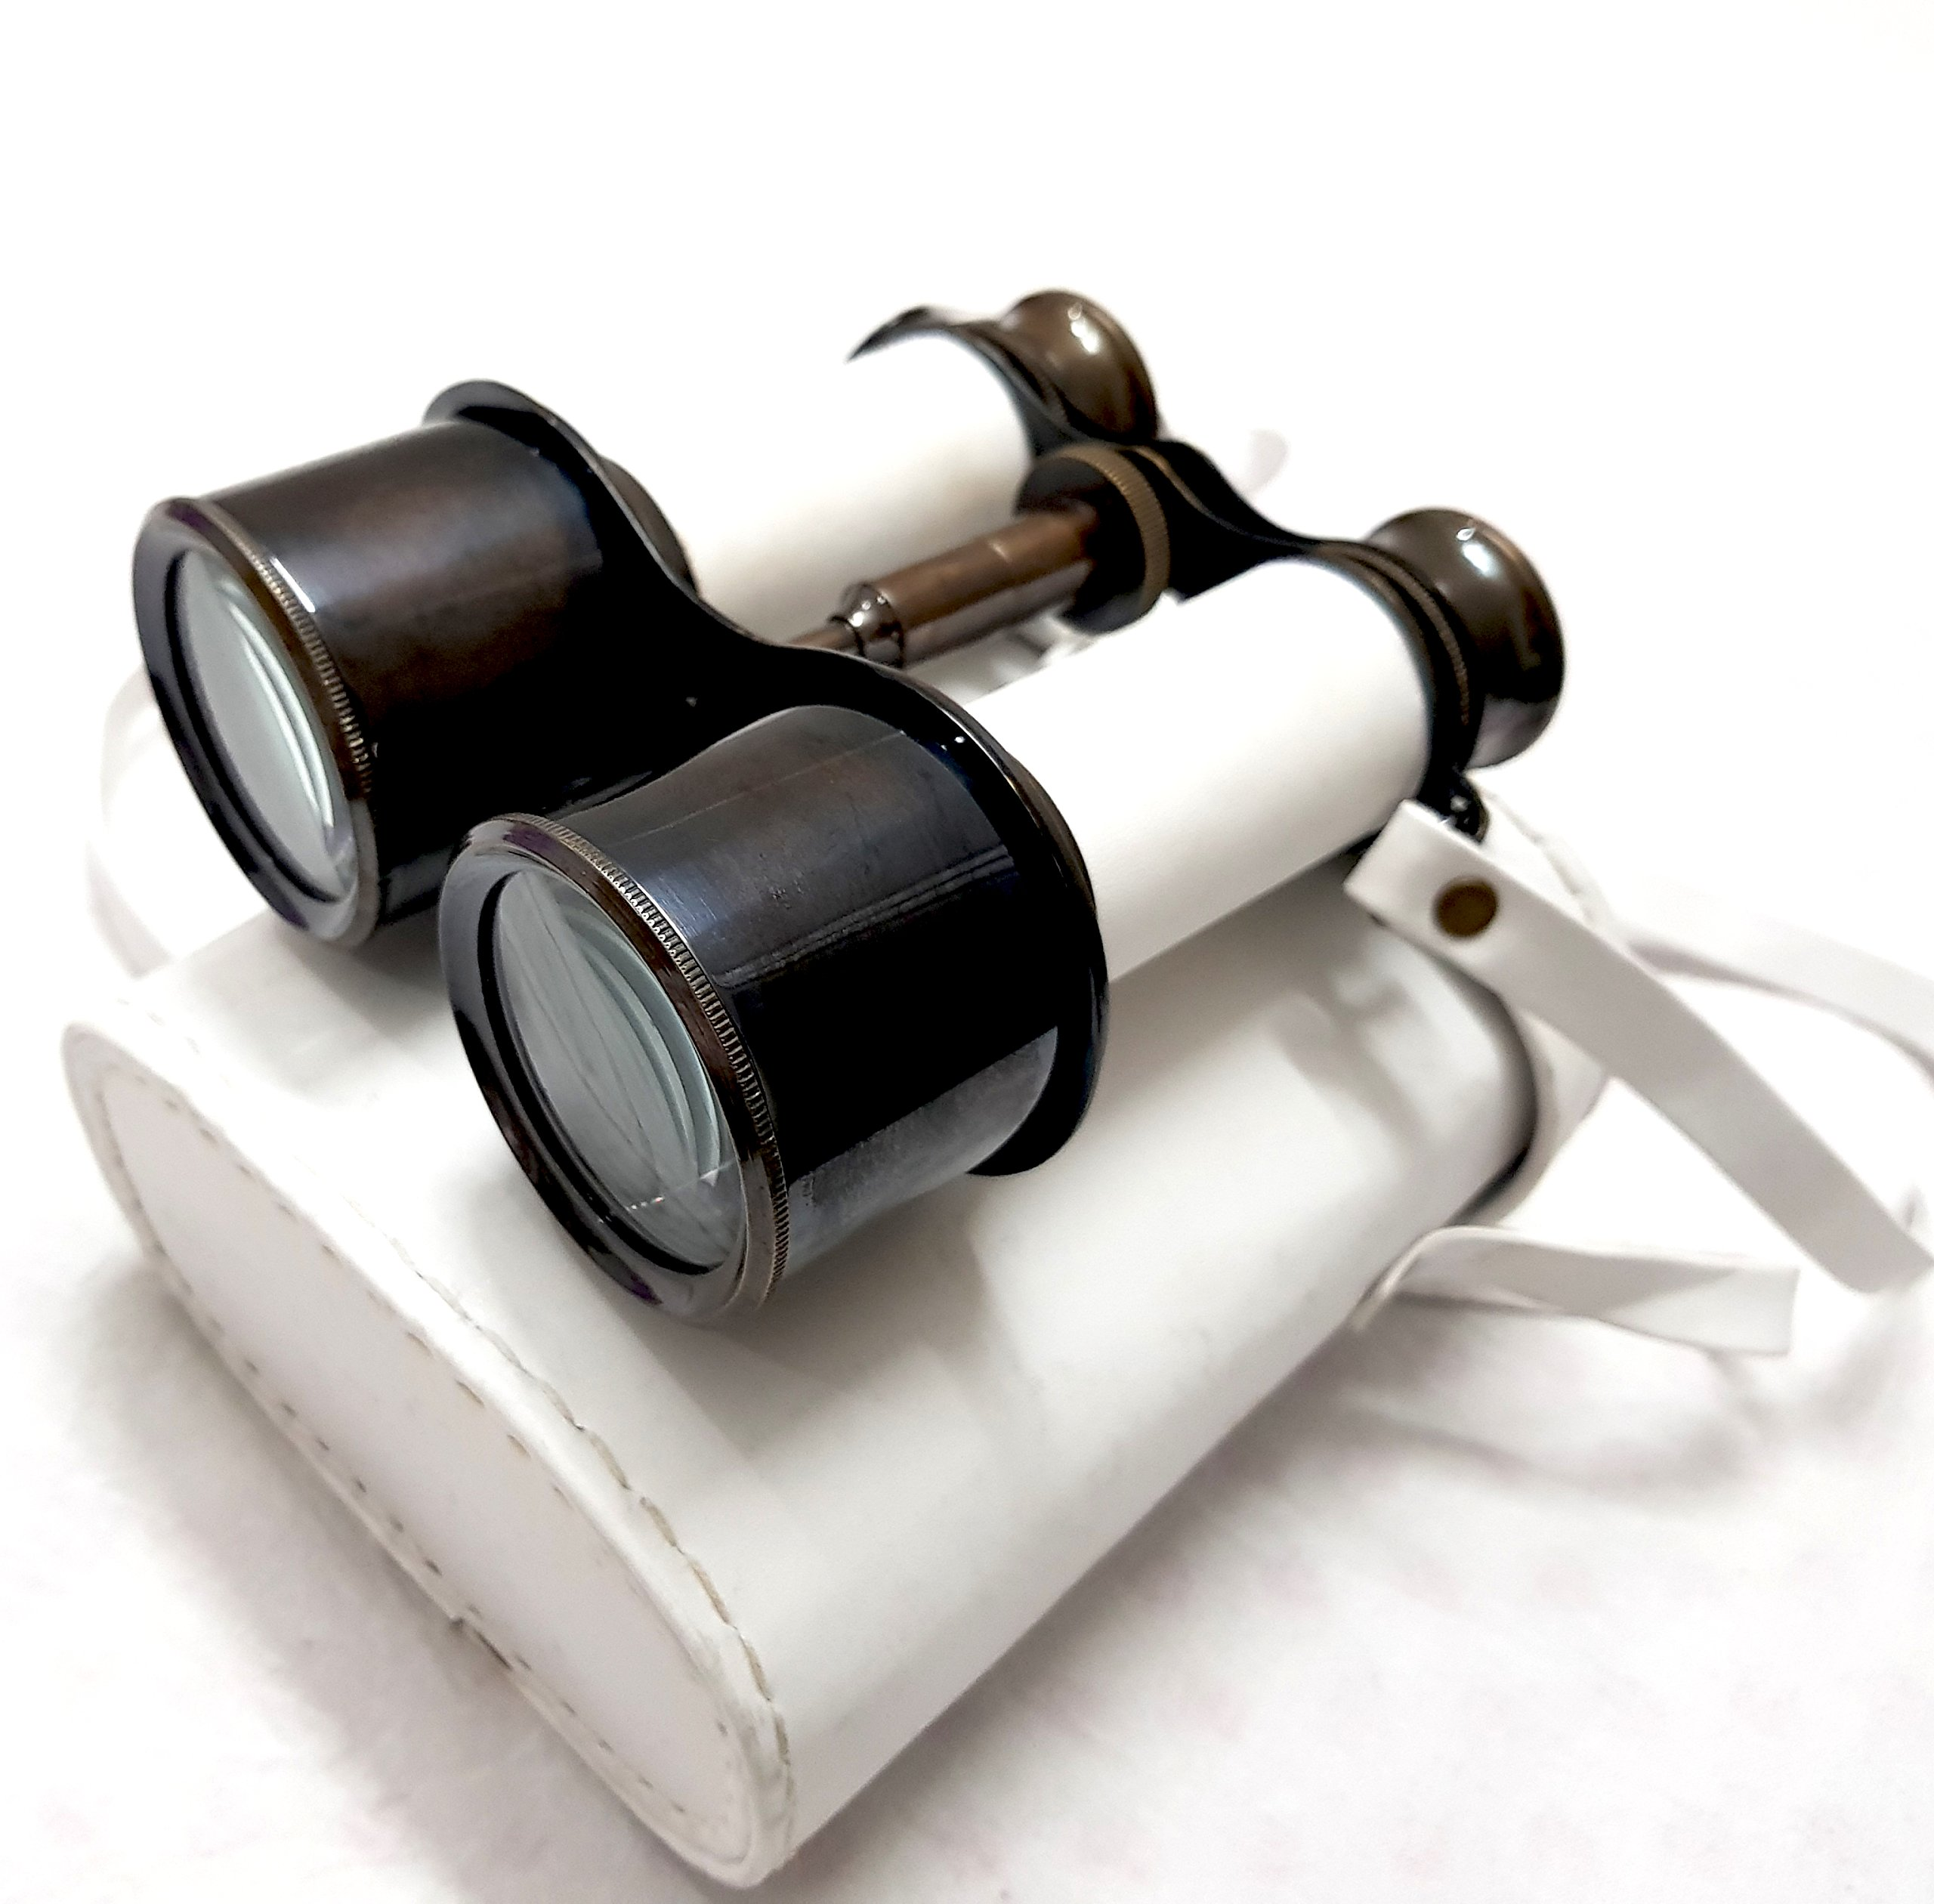 Black and White James Bond Brass Binocular with Royal Leather Case Nautical Action Monocular - collectiblesBuy by collectiblesBuy